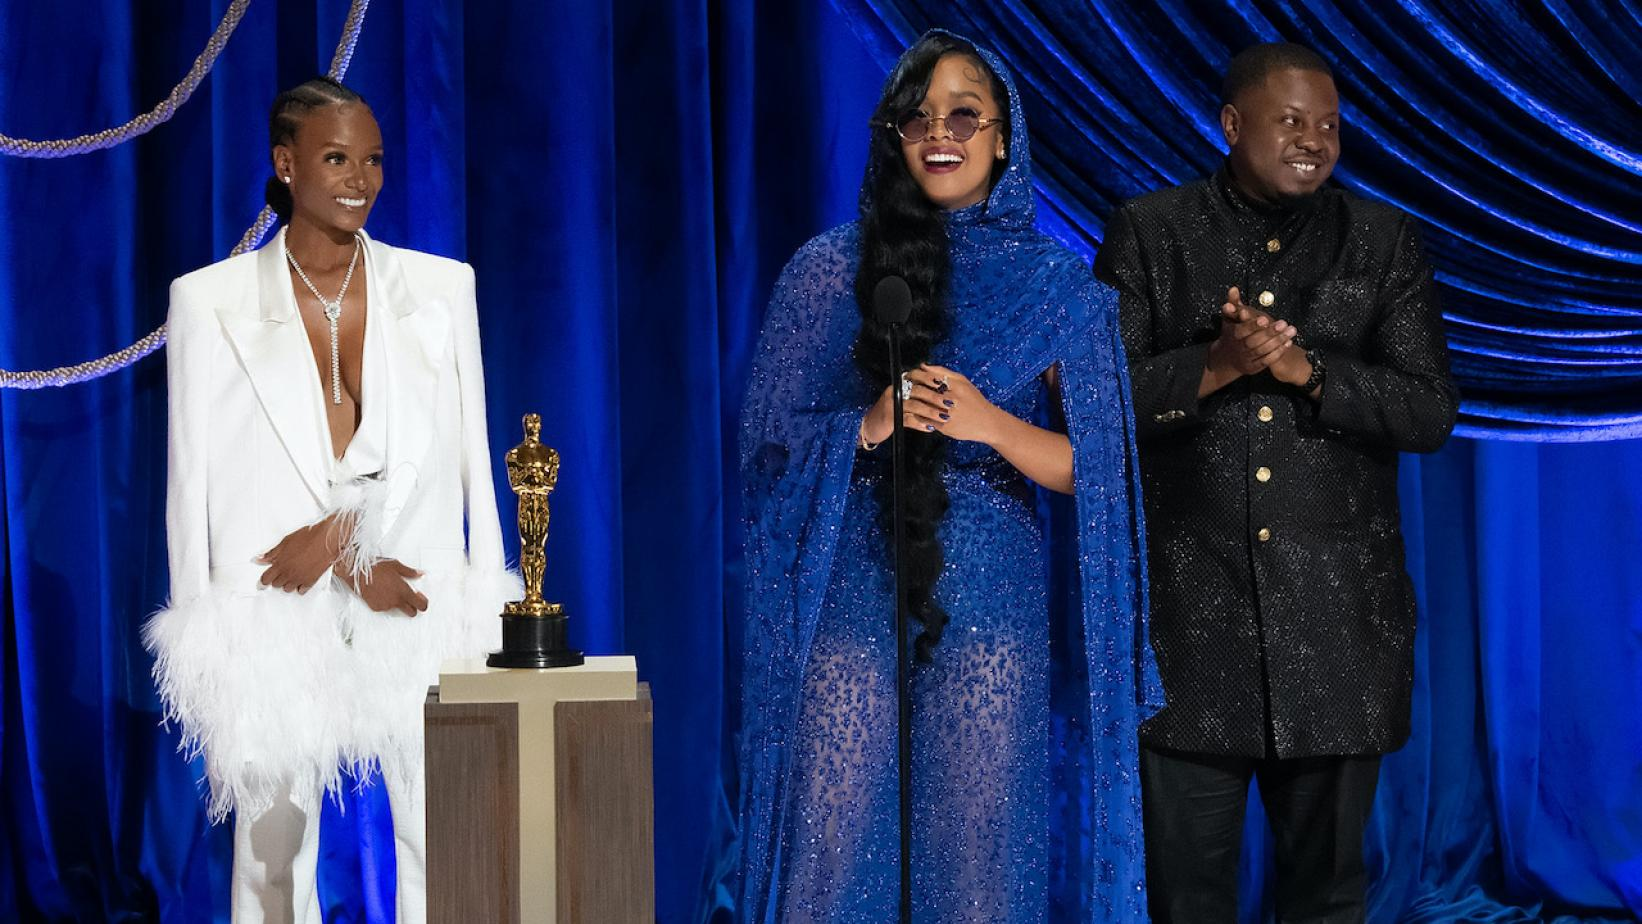 Photo of Tiara Thomas, H.E.R. and Dernst Emile II accepting the Oscar for Best Original Song at the 2021 Oscars